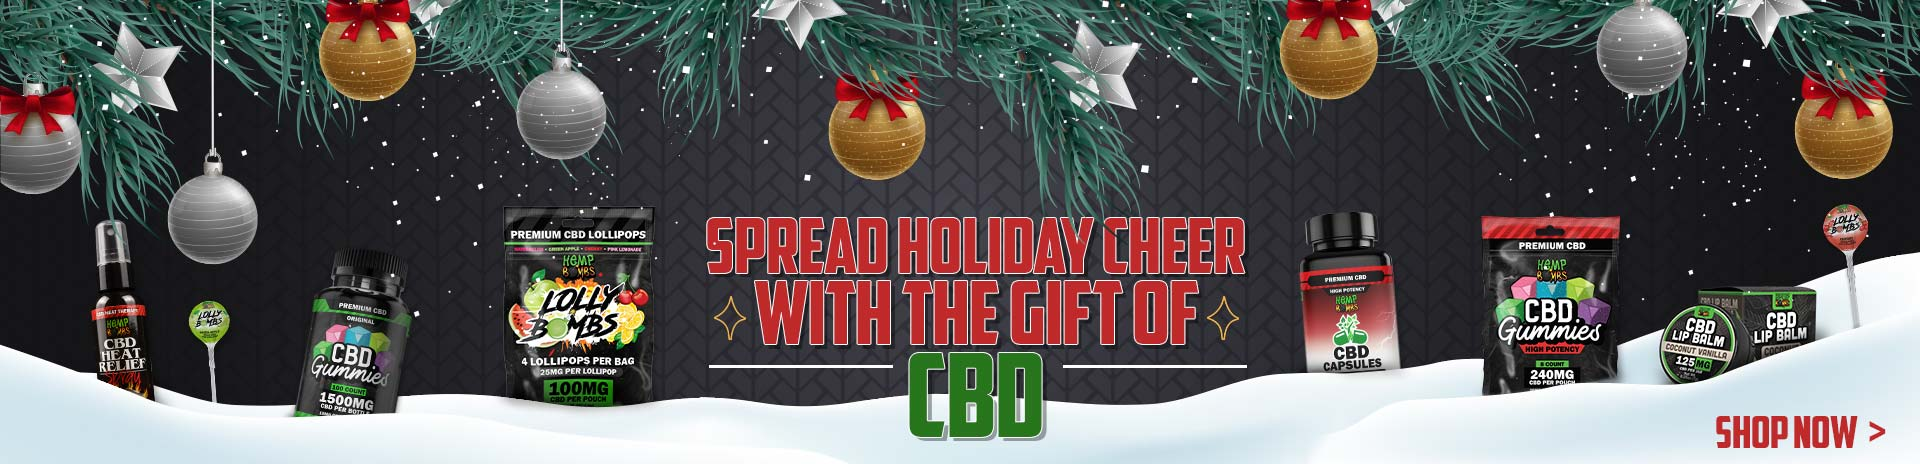 2020 CBD Products Gift Guide